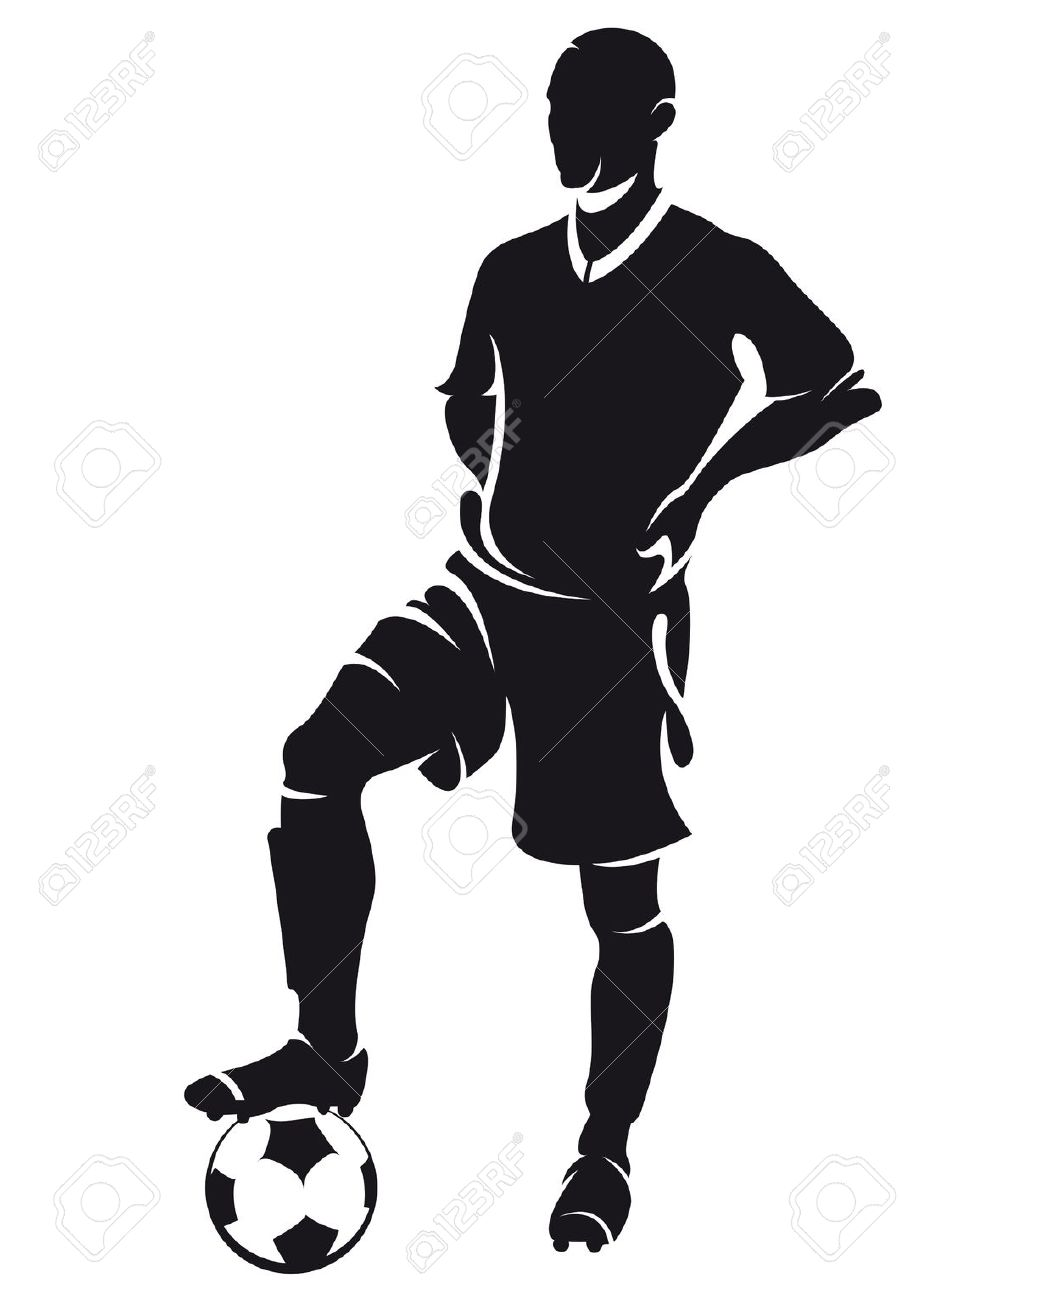 1039x1300 Man Holding Soccer Ball Silhouette